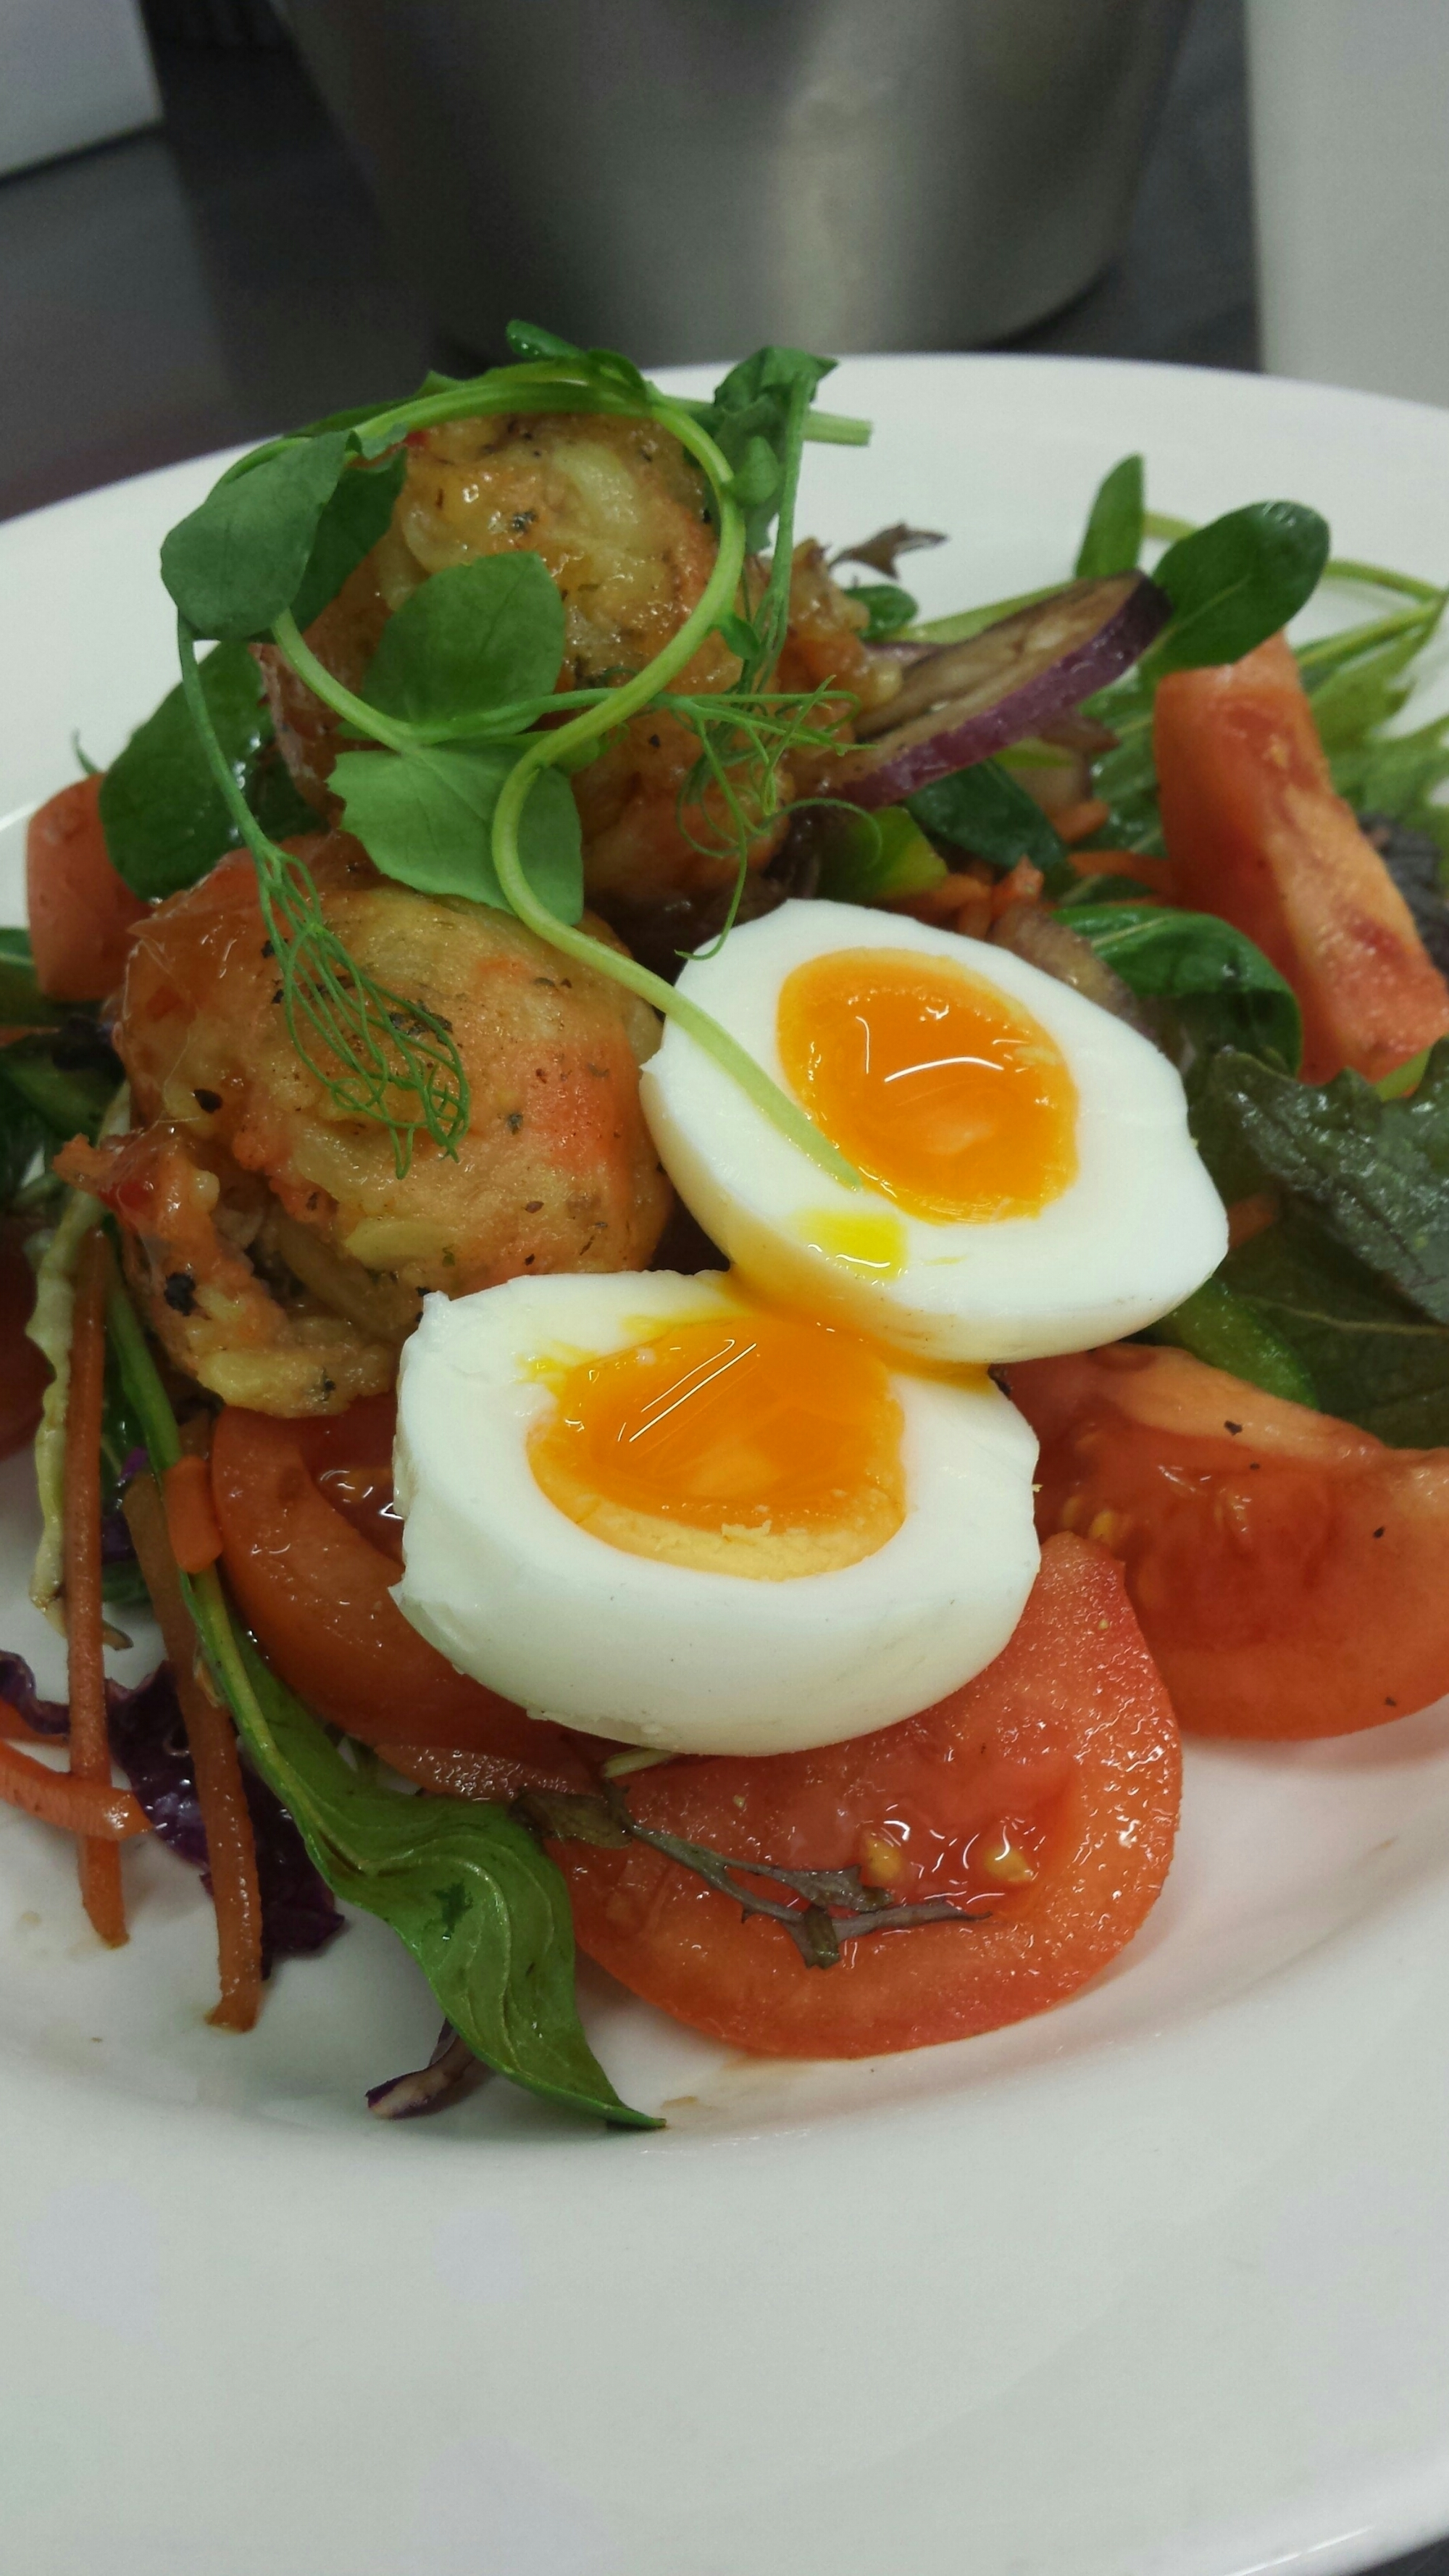 Fish friday…… fish ball with soft boiled egg garden salad